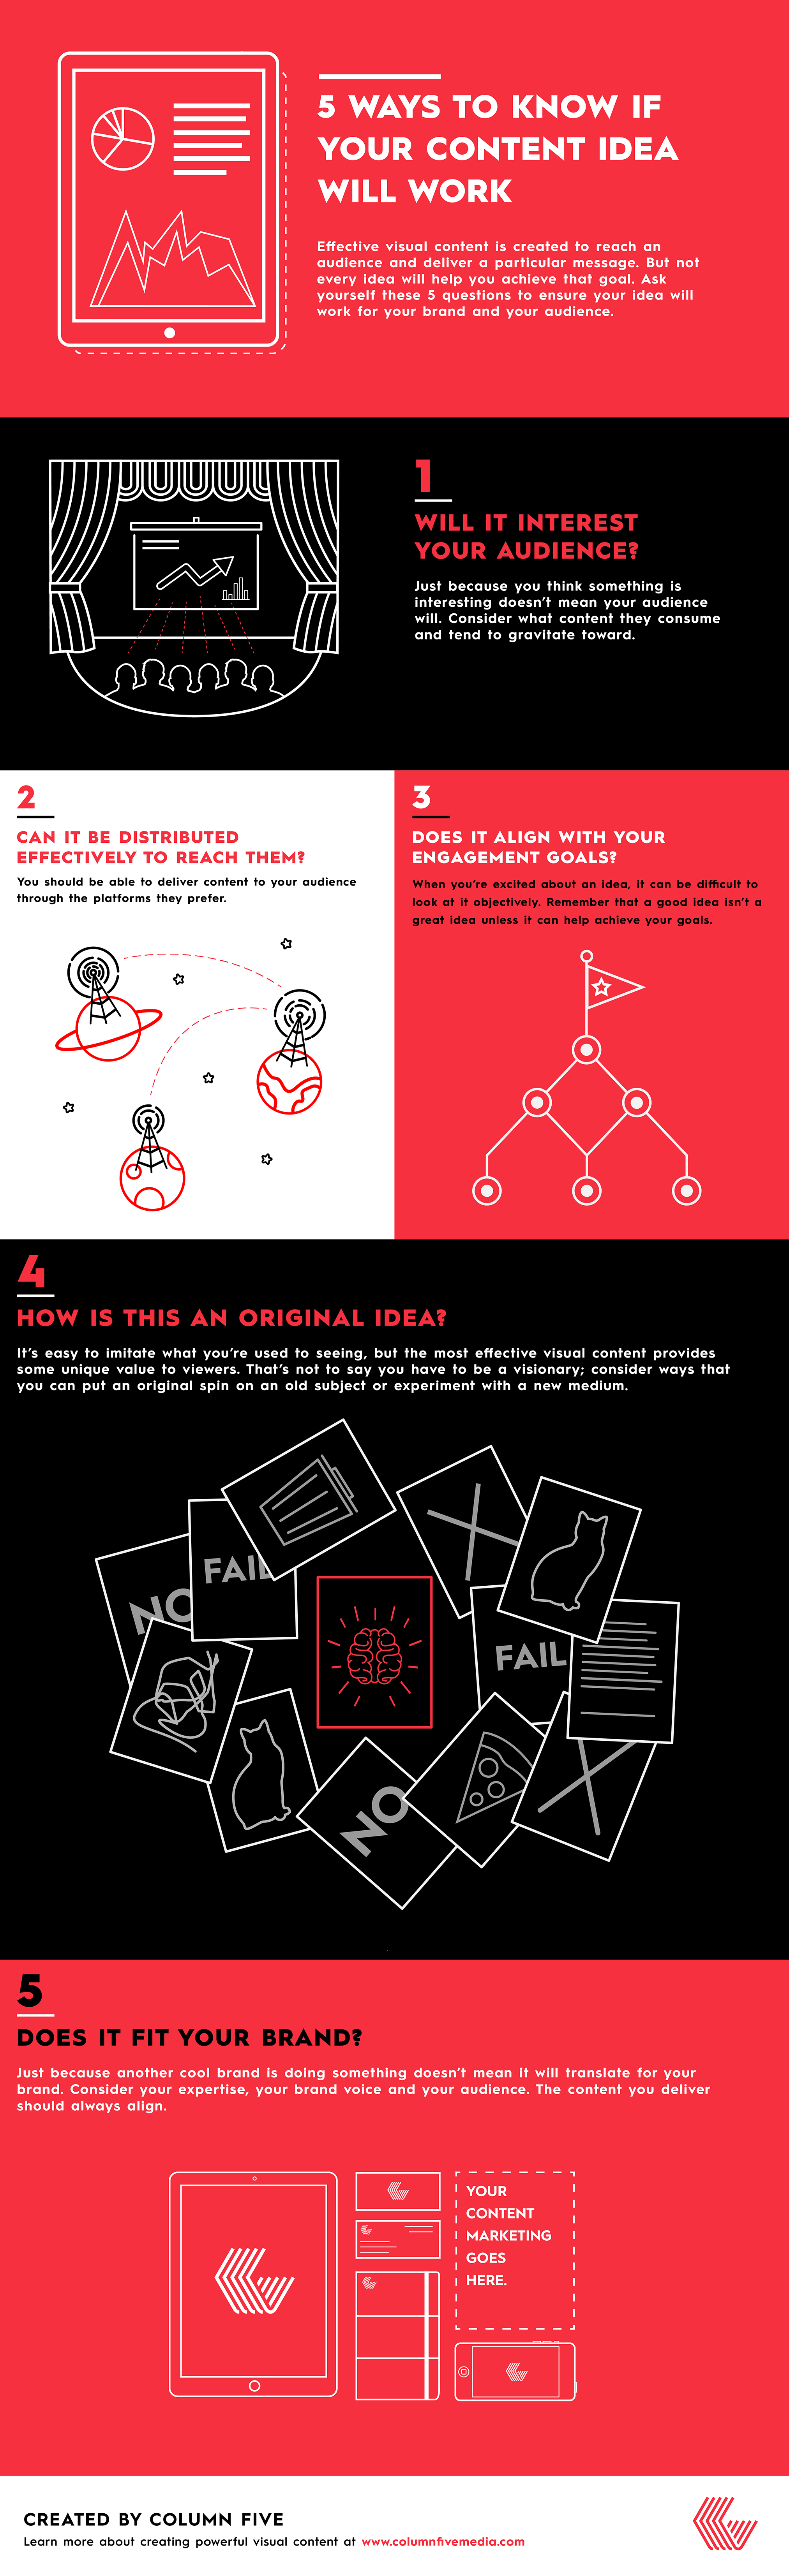 Will Your Idea Actually Work? 5 Questions That'll Help You Find Out [Infographic]